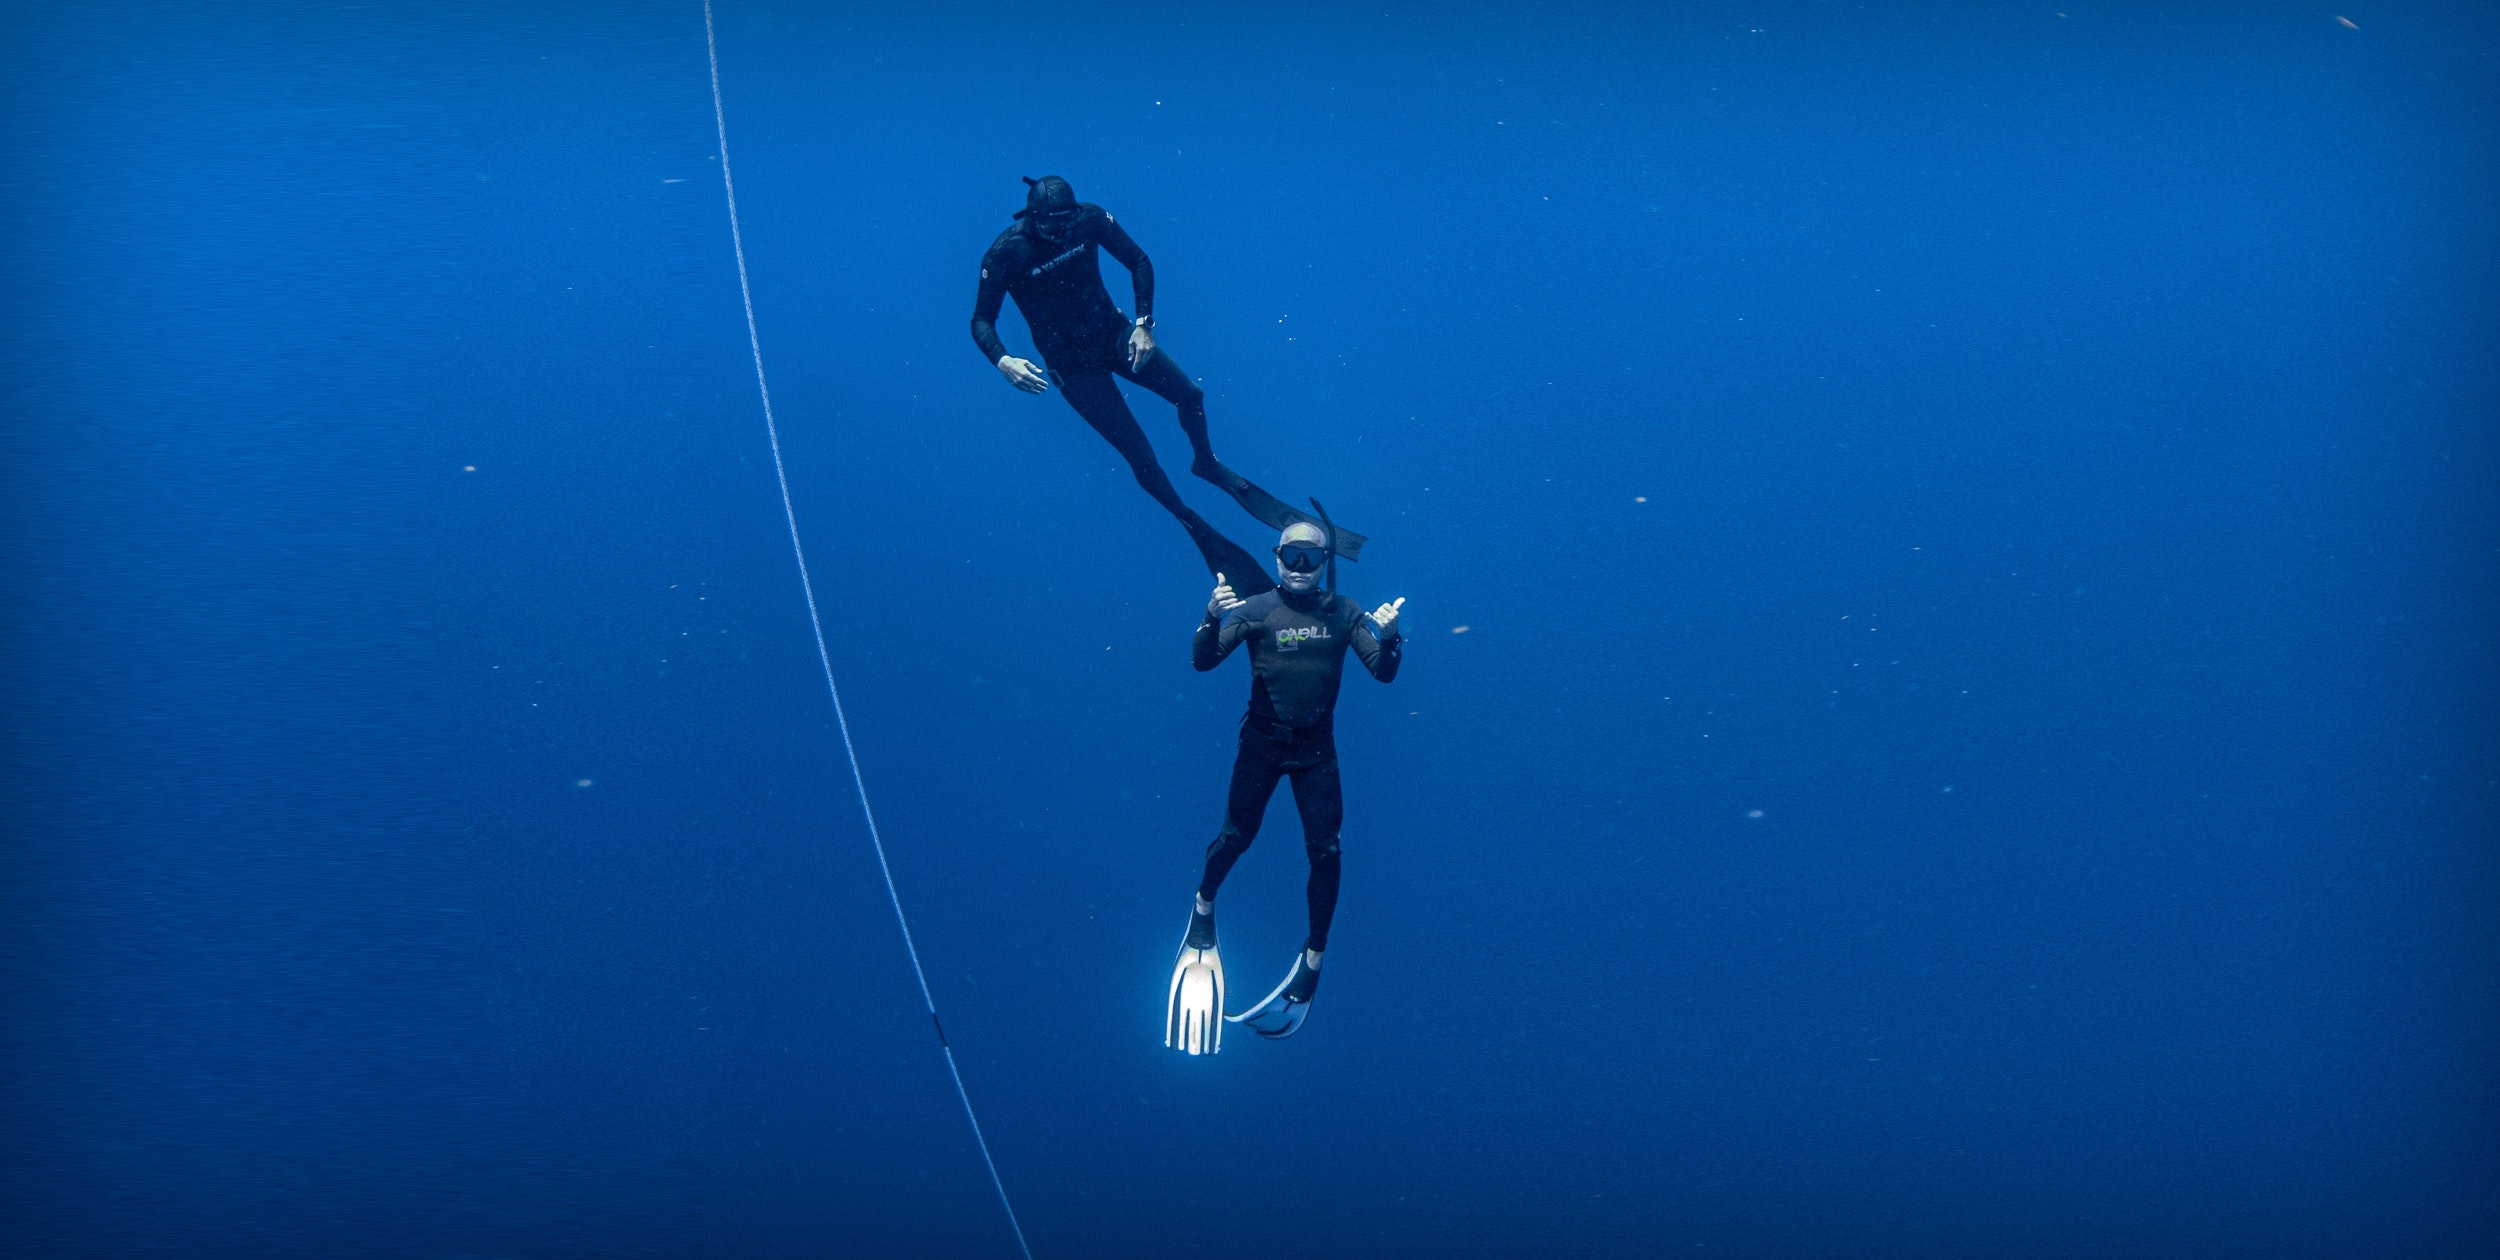 Review from Pedro on the F.I.I Level 1 Freediver